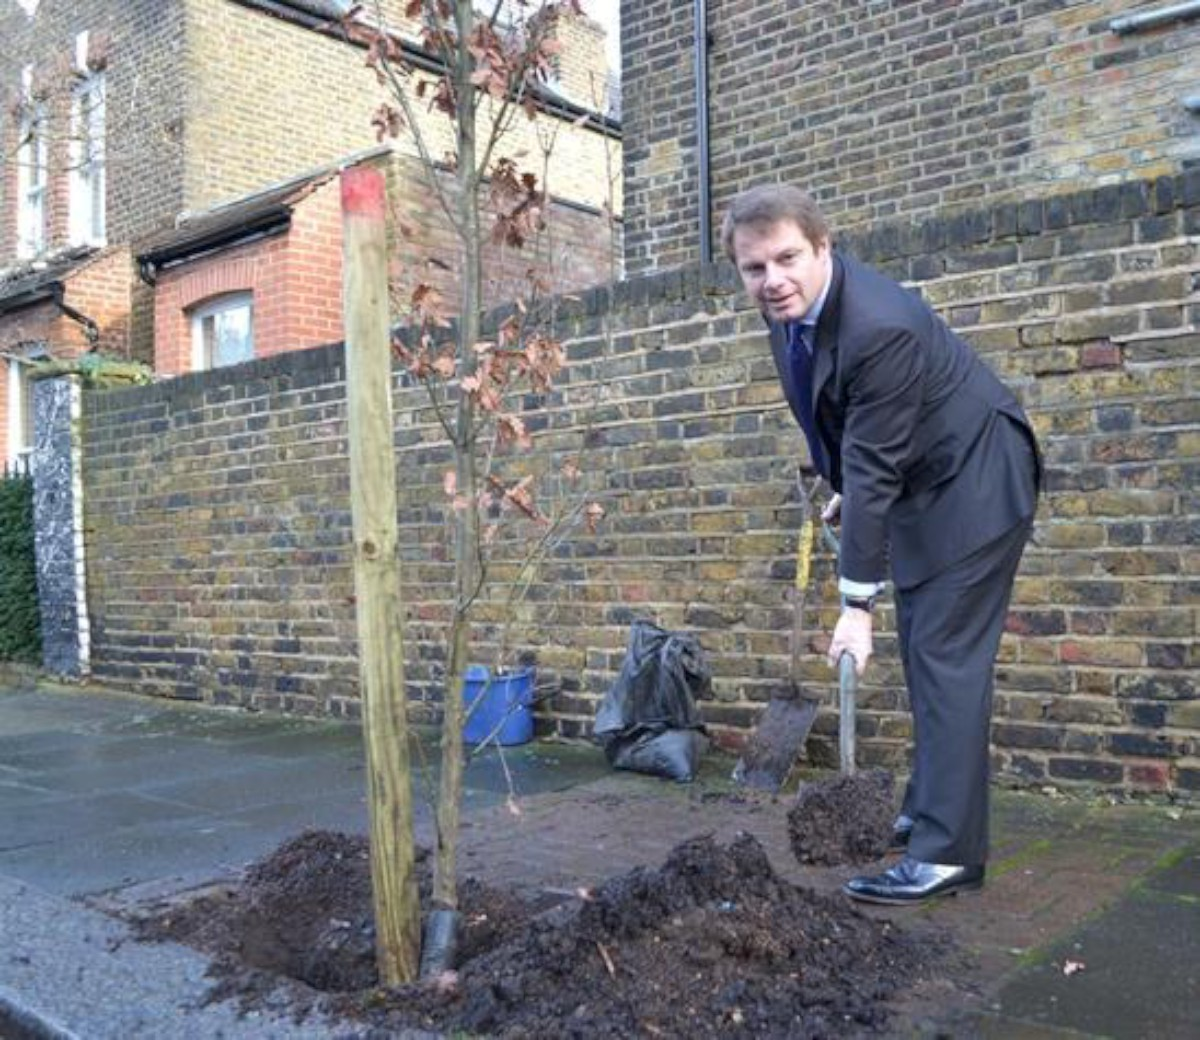 Councillor Jonathan Cook gets his hands dirty planting a tree in Battersea